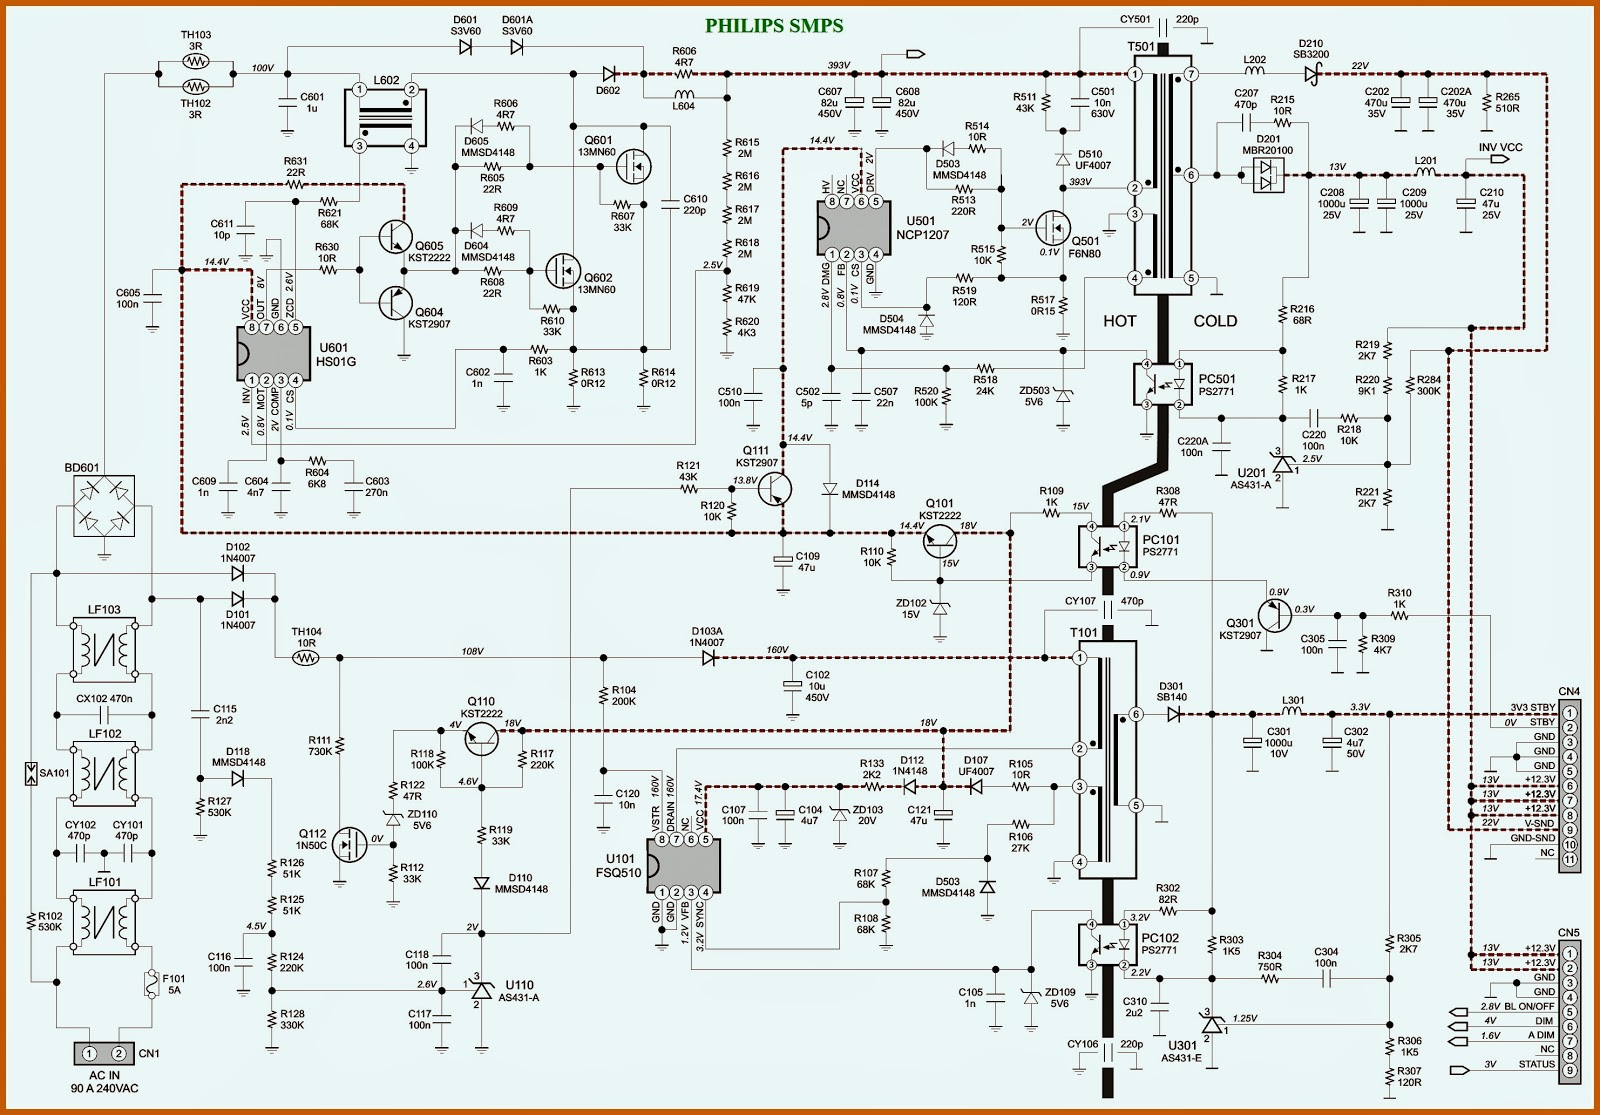 Marvellous Microwave Oven Wiring Diagram For Model Jvm1440bh01 ...